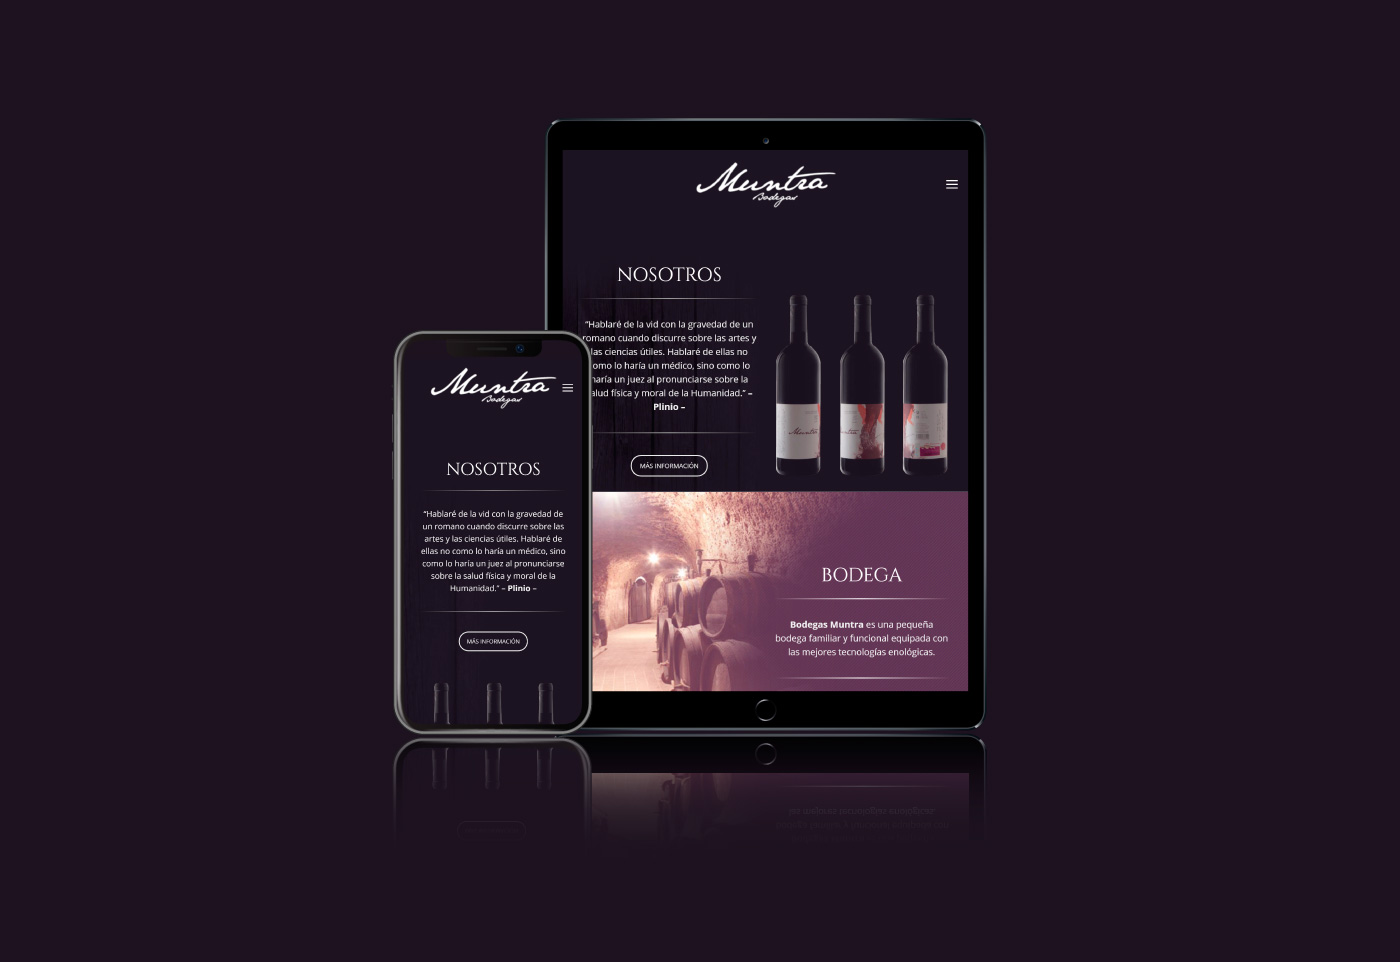 Bodegas-Muntra-Jose-Krawczyk-Devices-